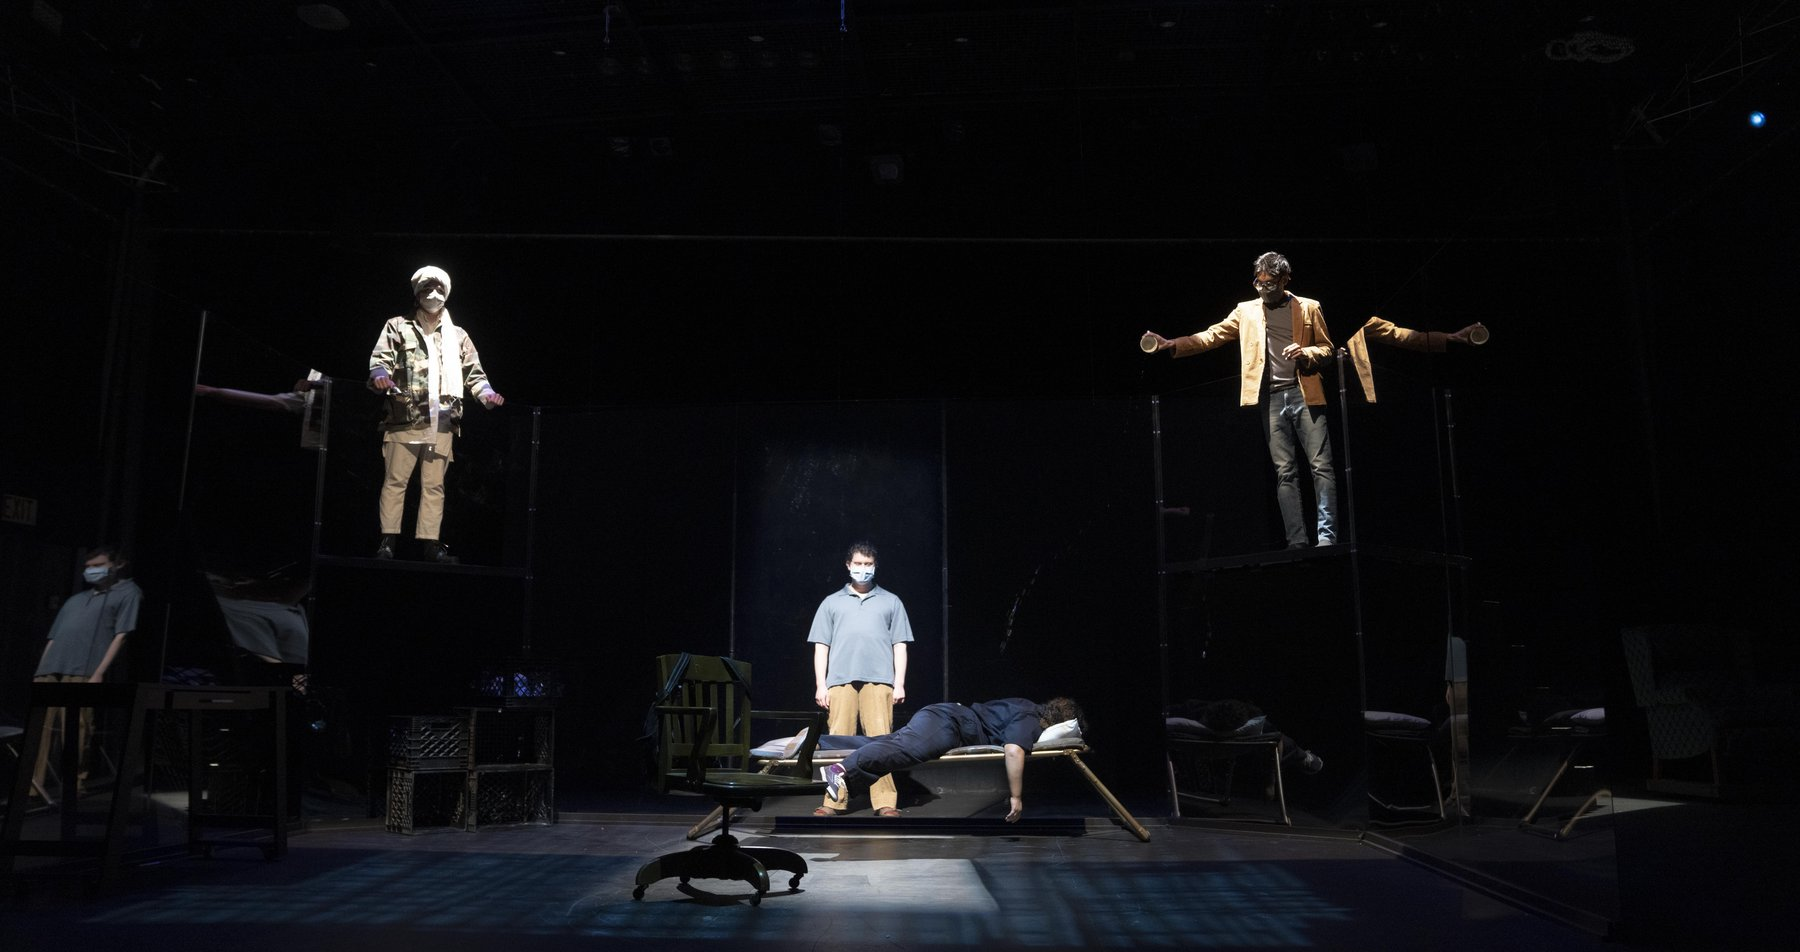 A dark stage with spotlights on four actors - one lying face down and three standing above.